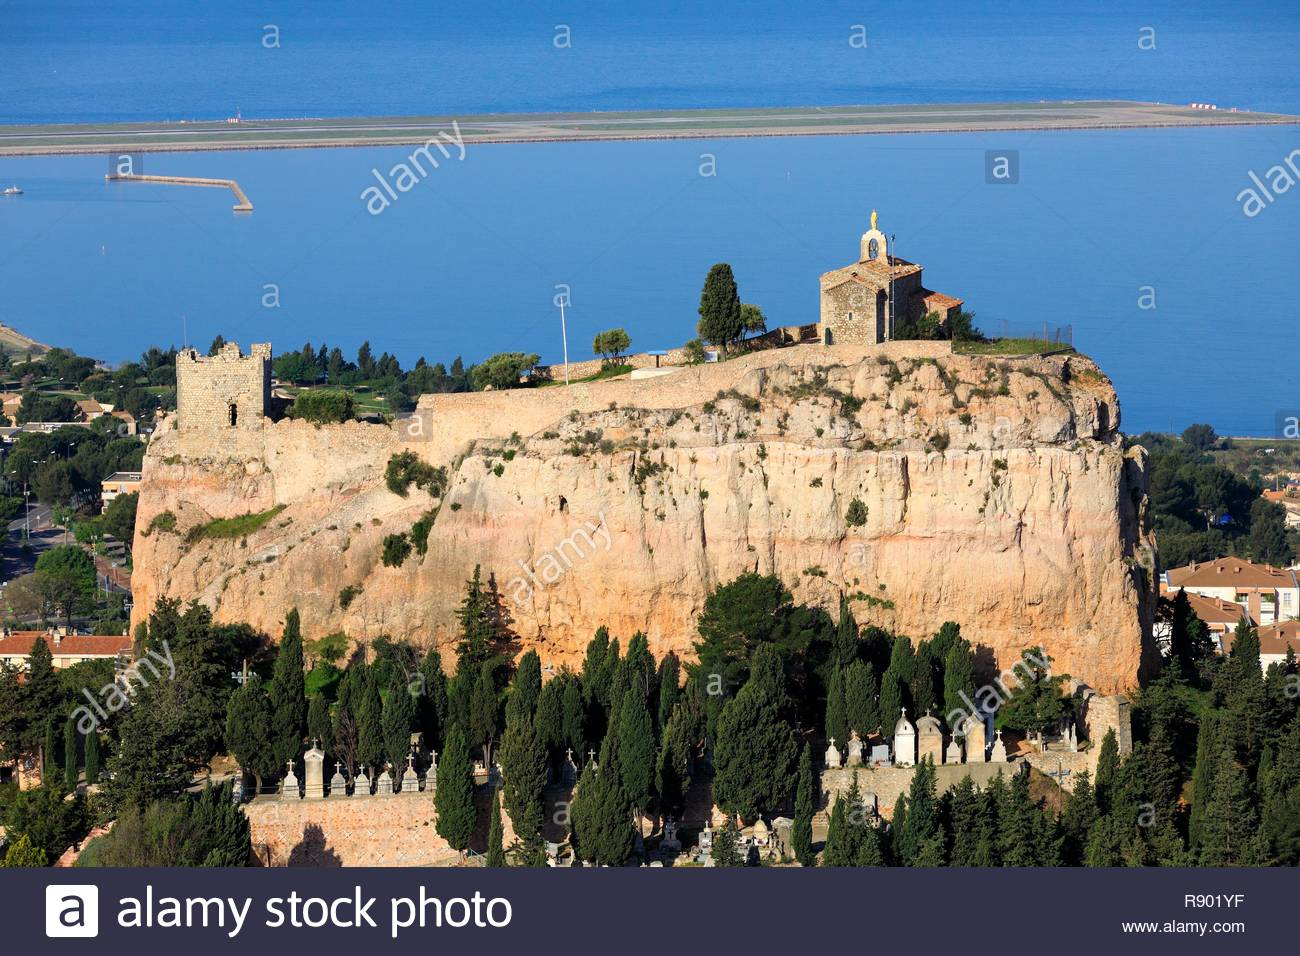 France, Bouches du Rhone, Vitrolles, the rock, Notre Dame de Vie chapel, Sarrasine tower (XI century), listed as a historical monument, the Marseille Provence airport and Etang de Berre in the background (aerial view) - Stock Image